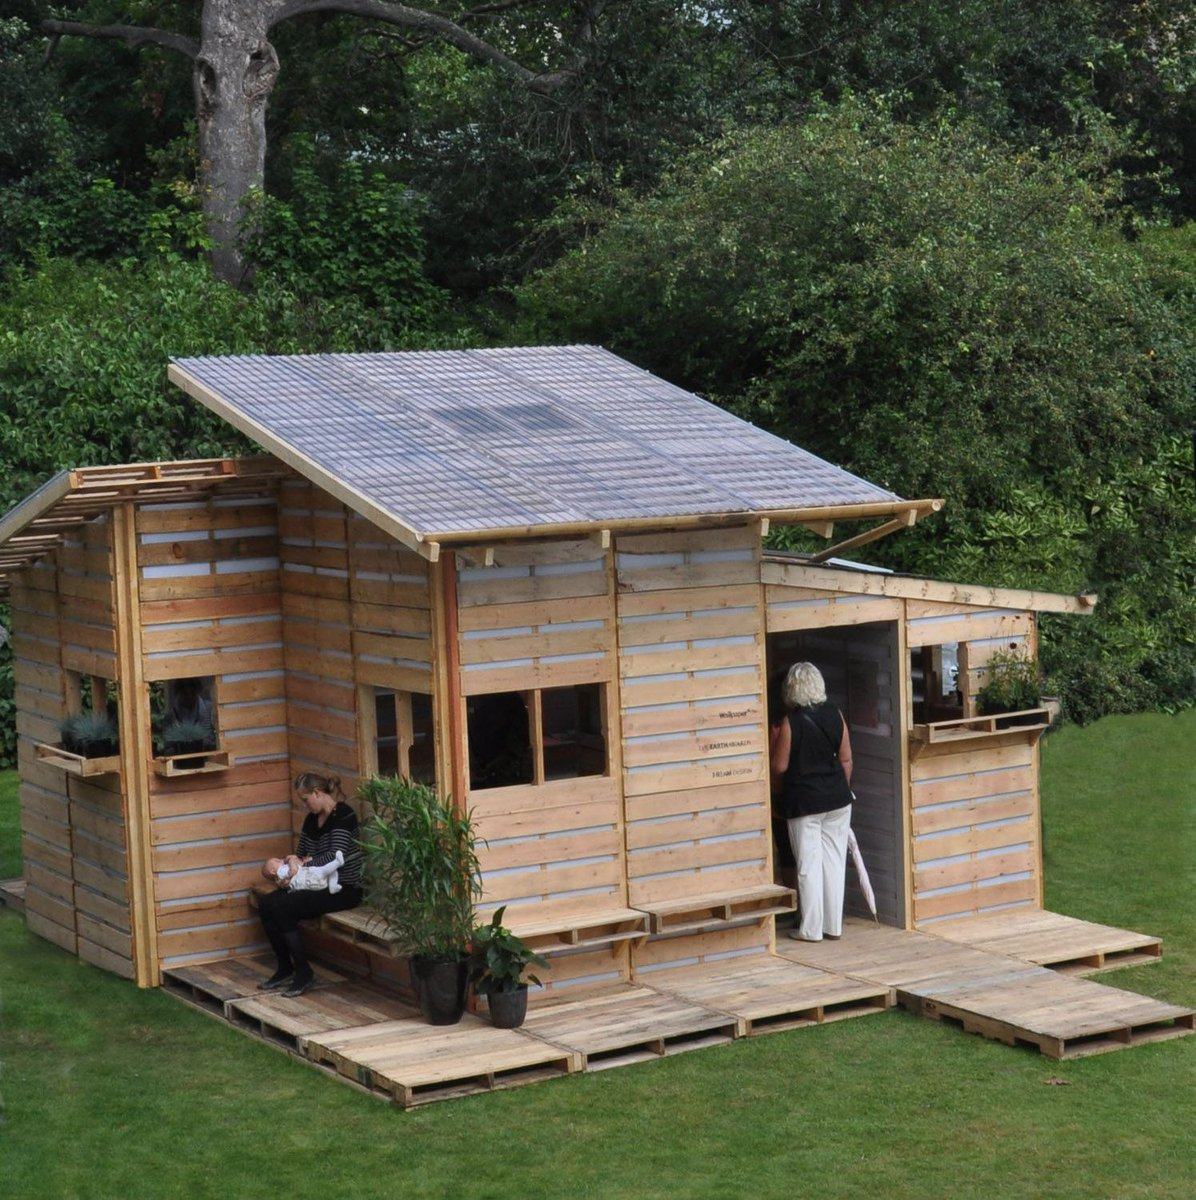 DIY Pallet House, ecological and low-cost recycling source: ecobnb https://buff.ly/3e7qxFE  #archilovers  #architecturelovers  #building  #architectureporn  #architecturephotography  #buildings  #archidaily  #arquitectura  #architect  #architexture  #arquiteturapic.twitter.com/ZAv0PgkRoX